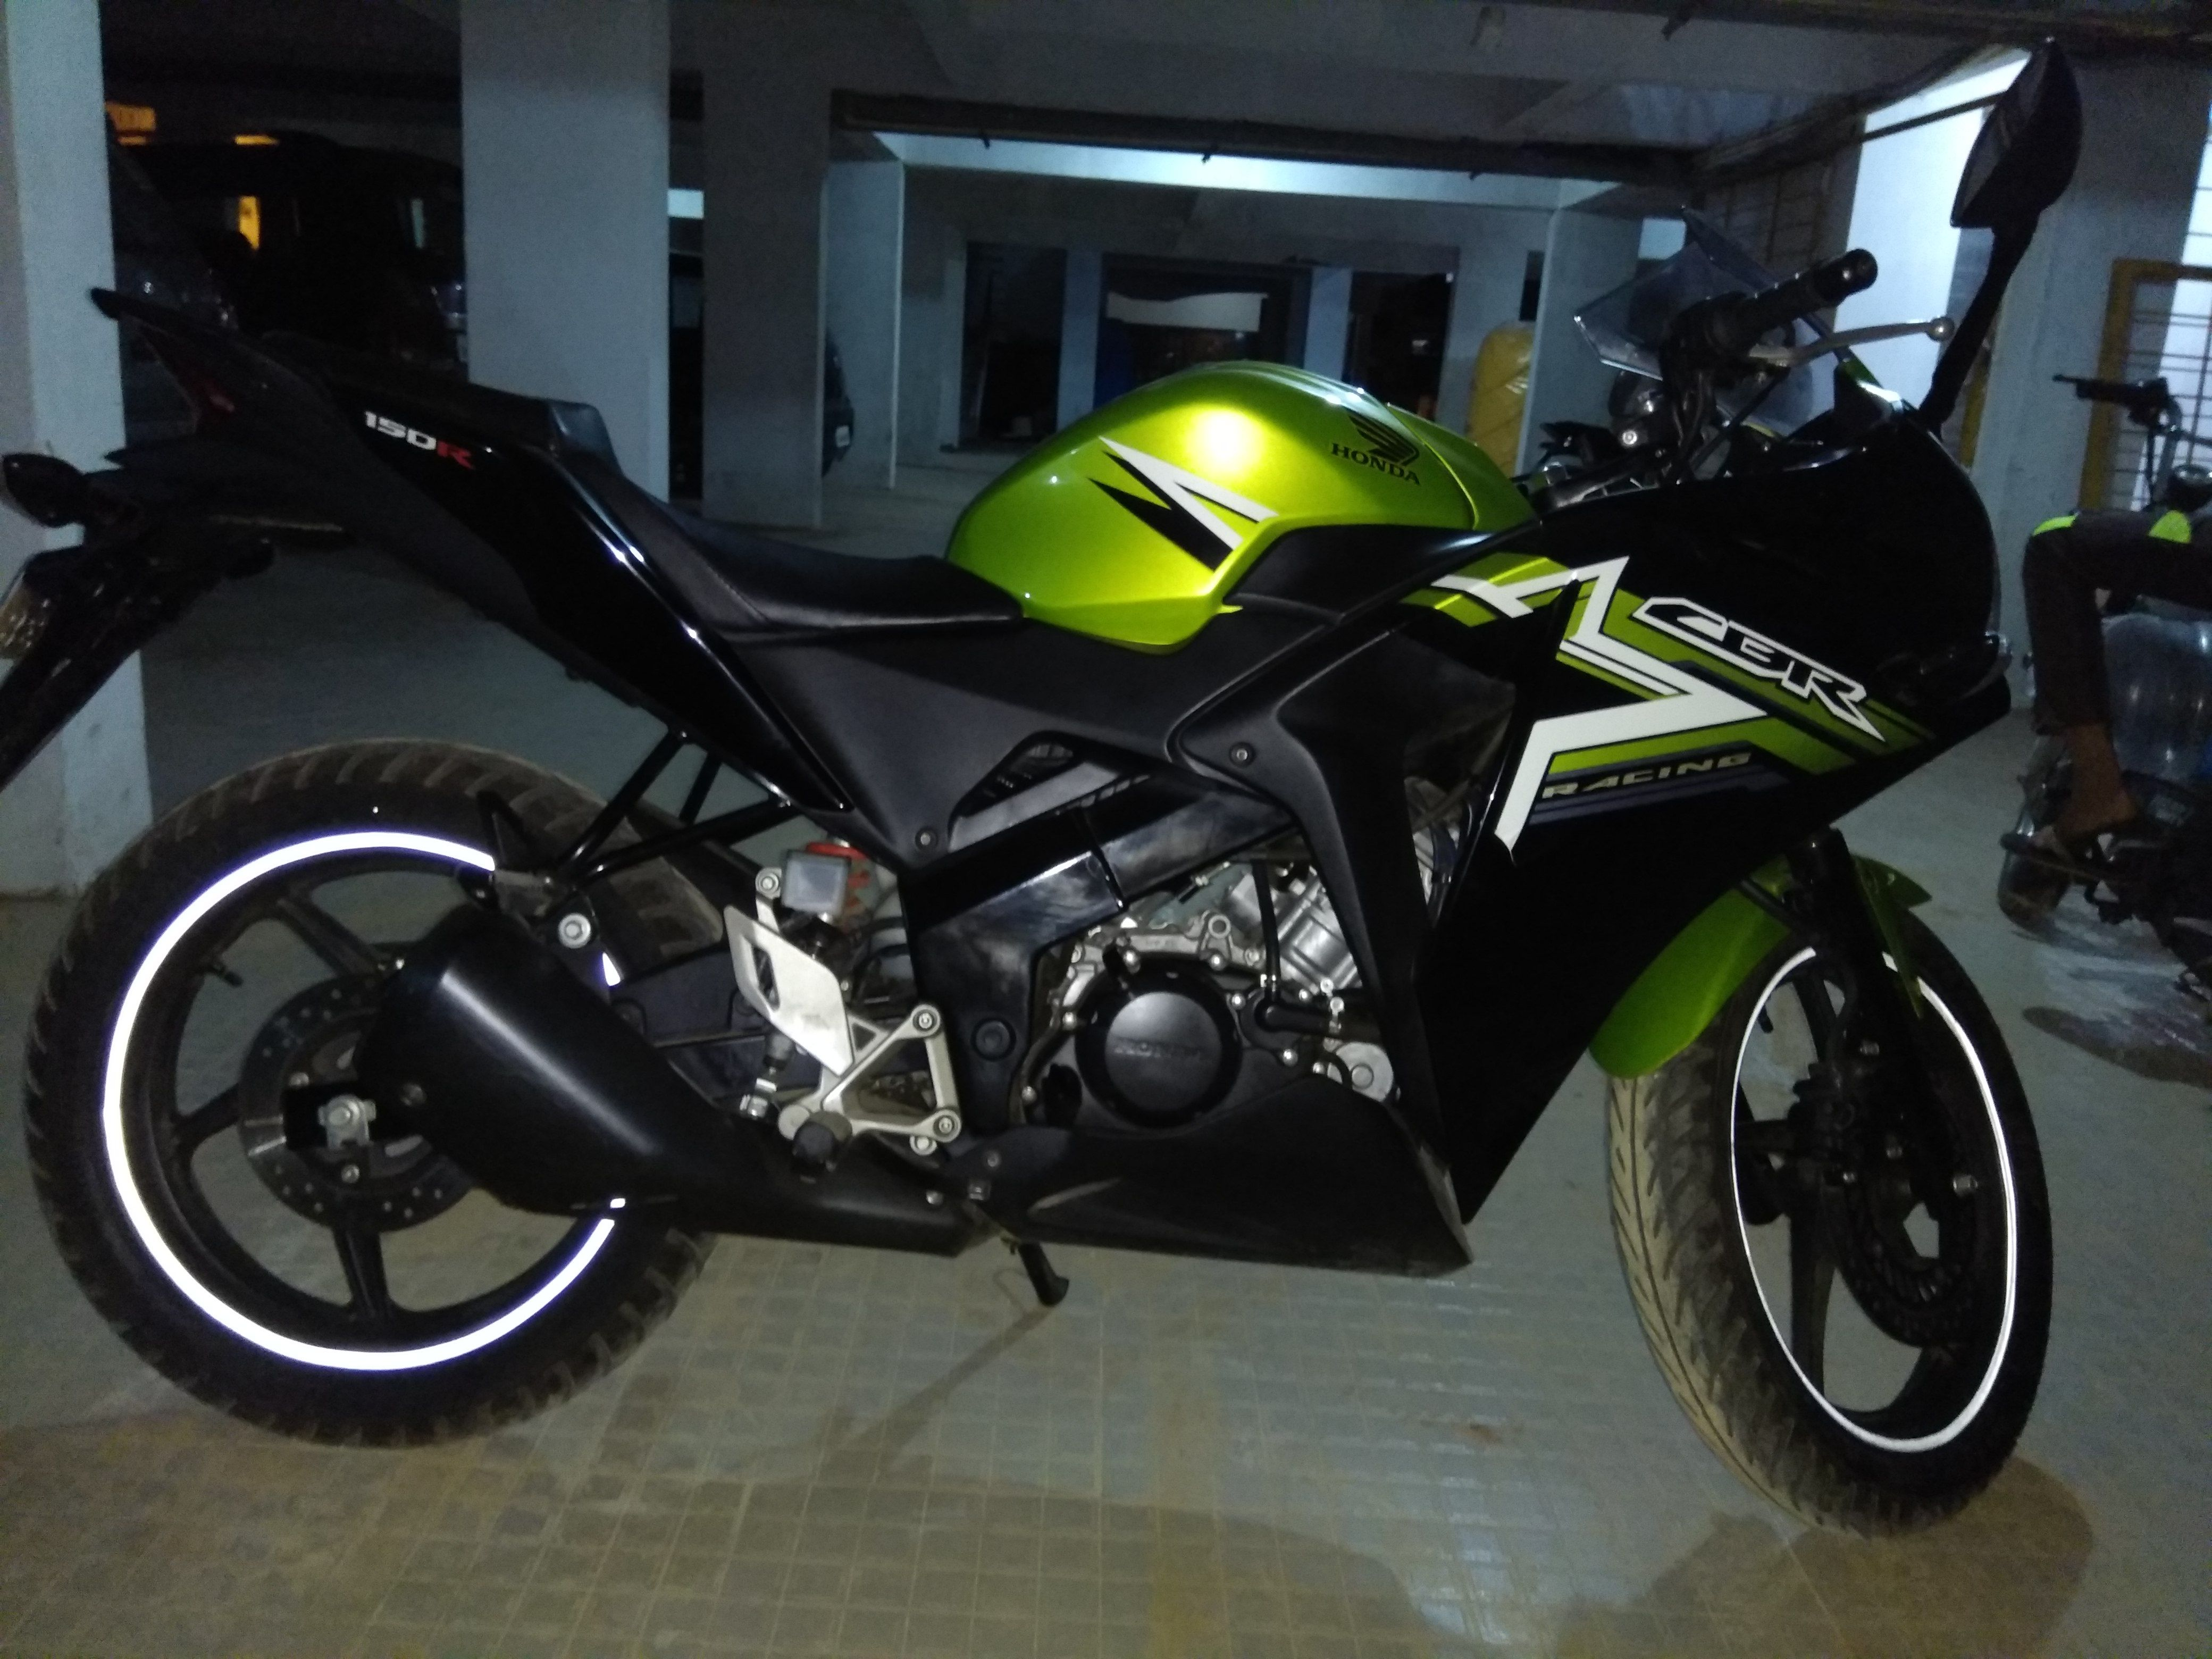 Dreamwheels india 2017 honda cbr 150 r for sale in bangalore buy superb condition 2017 honda cbr 150 r of 2017 model year with green colour